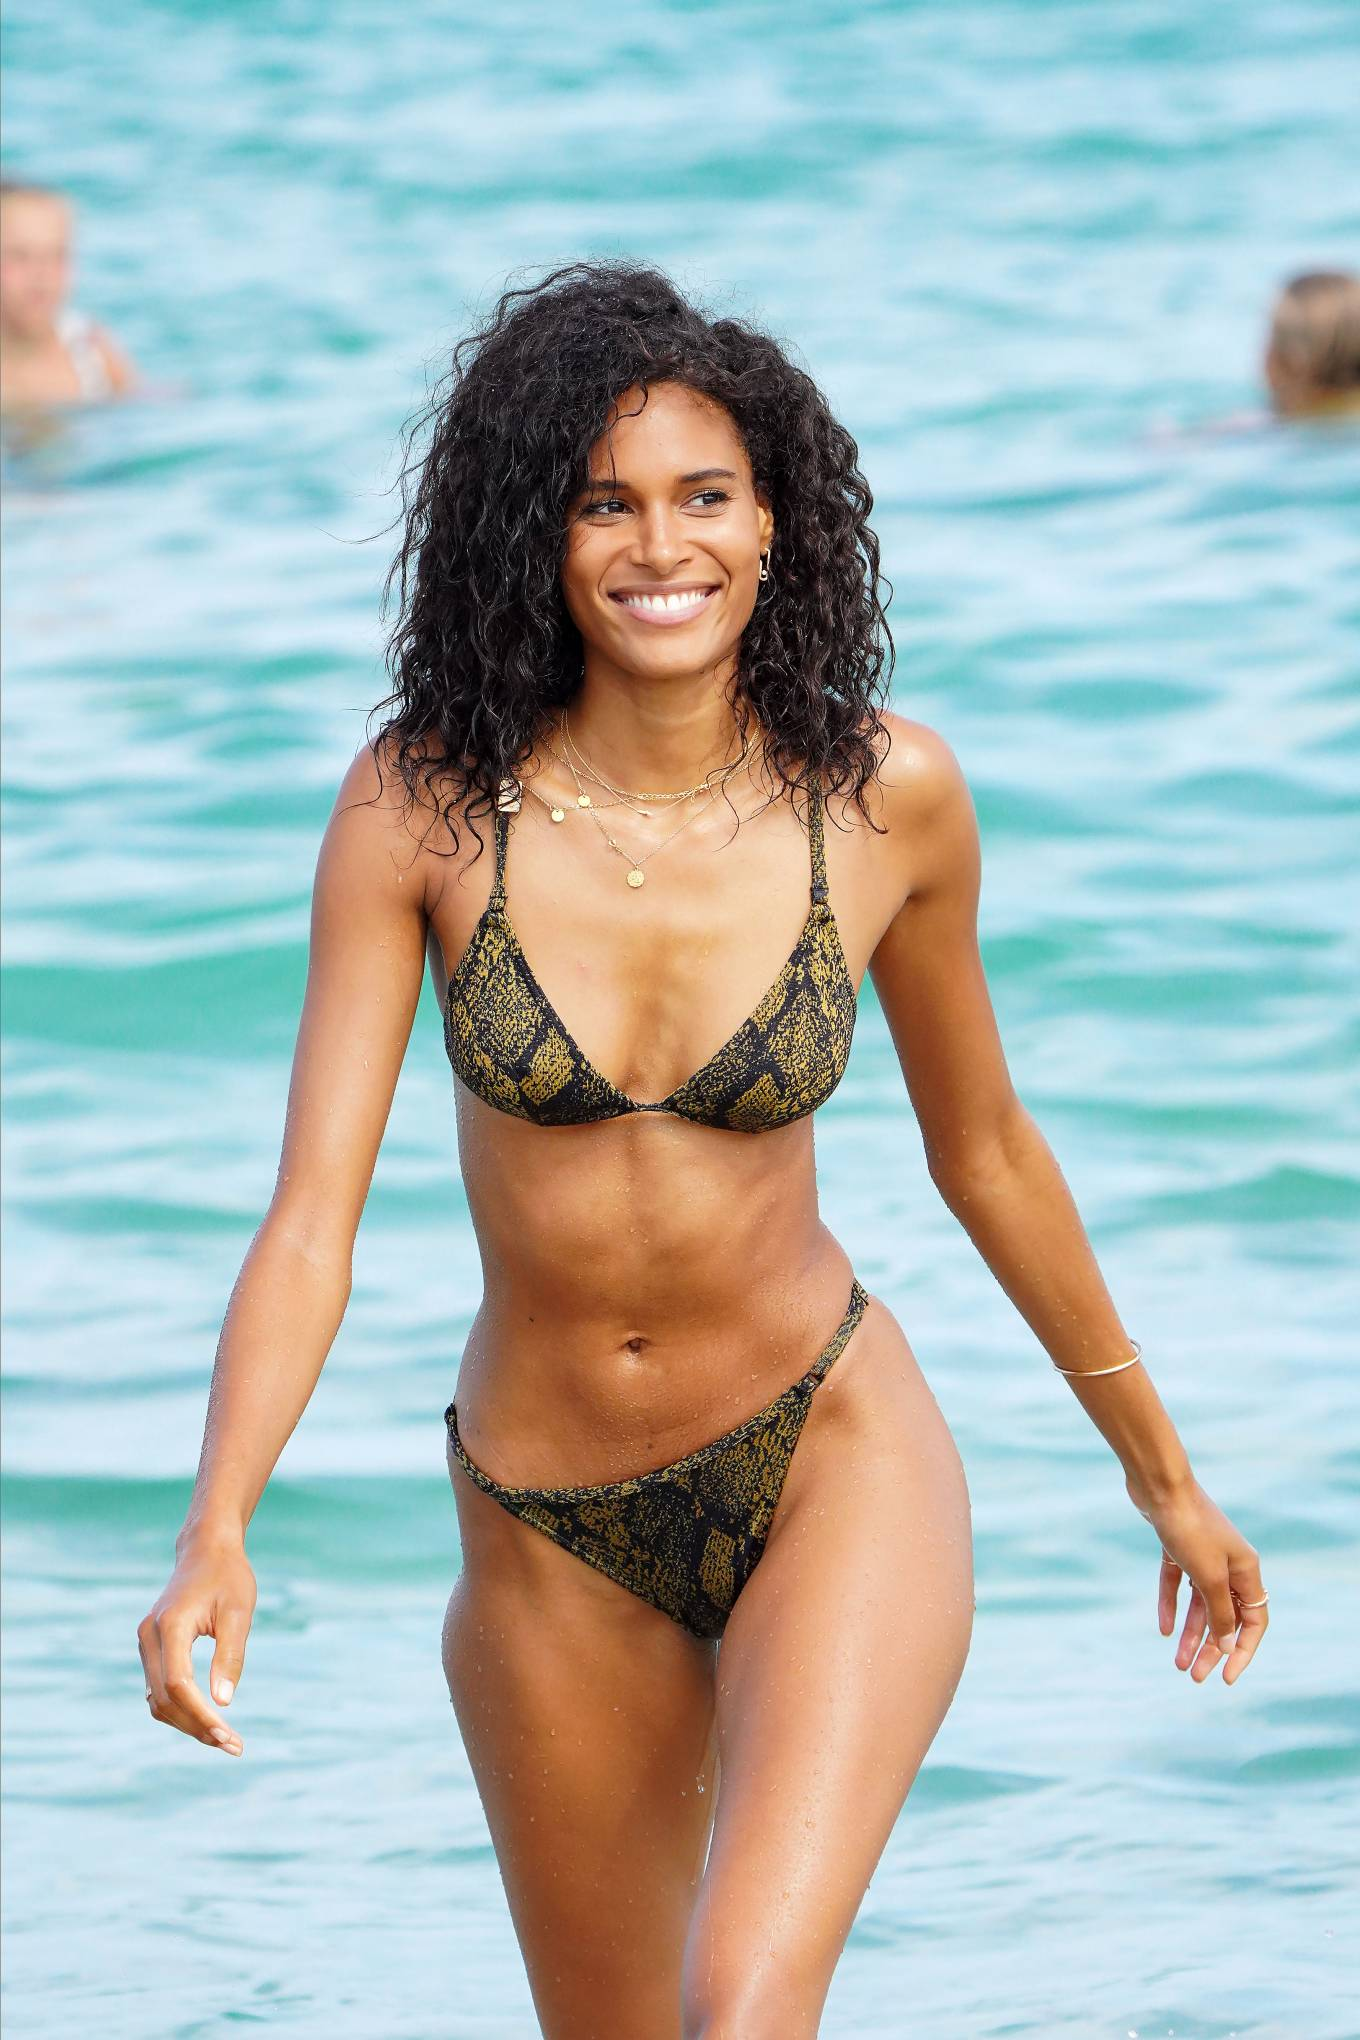 Cindy Bruna in Bikini on the beach in St. Tropez